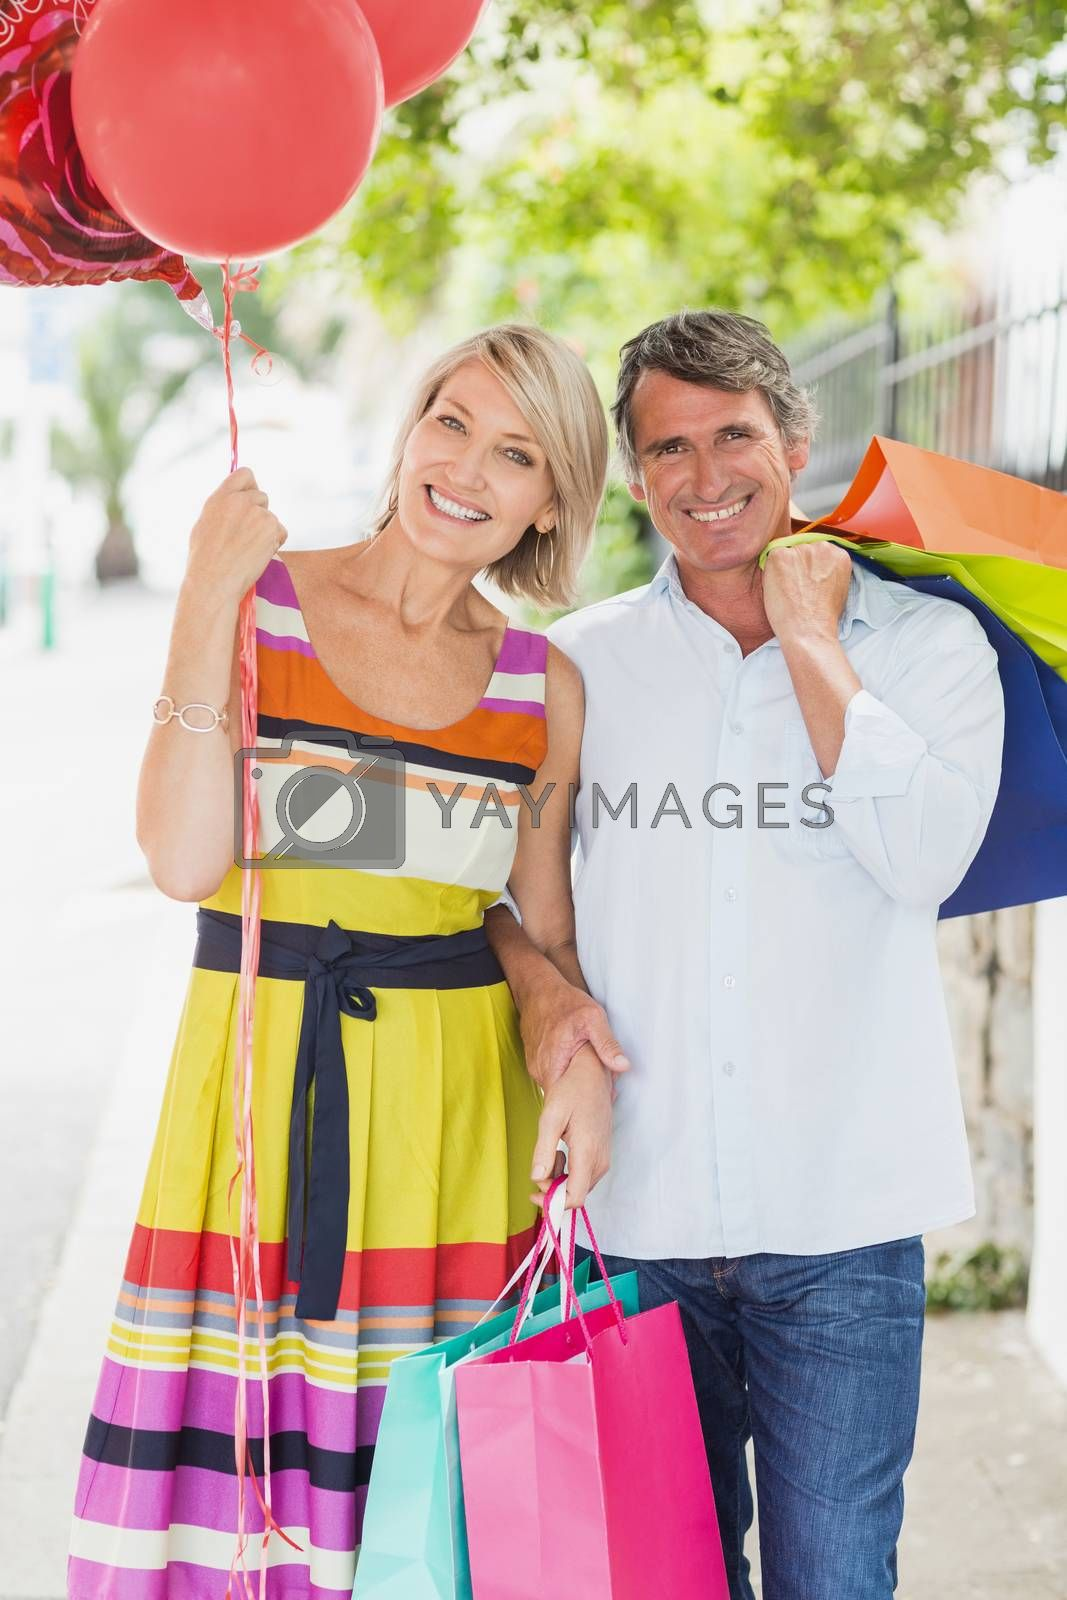 Portrait of couple with shopping bags and balloons in city